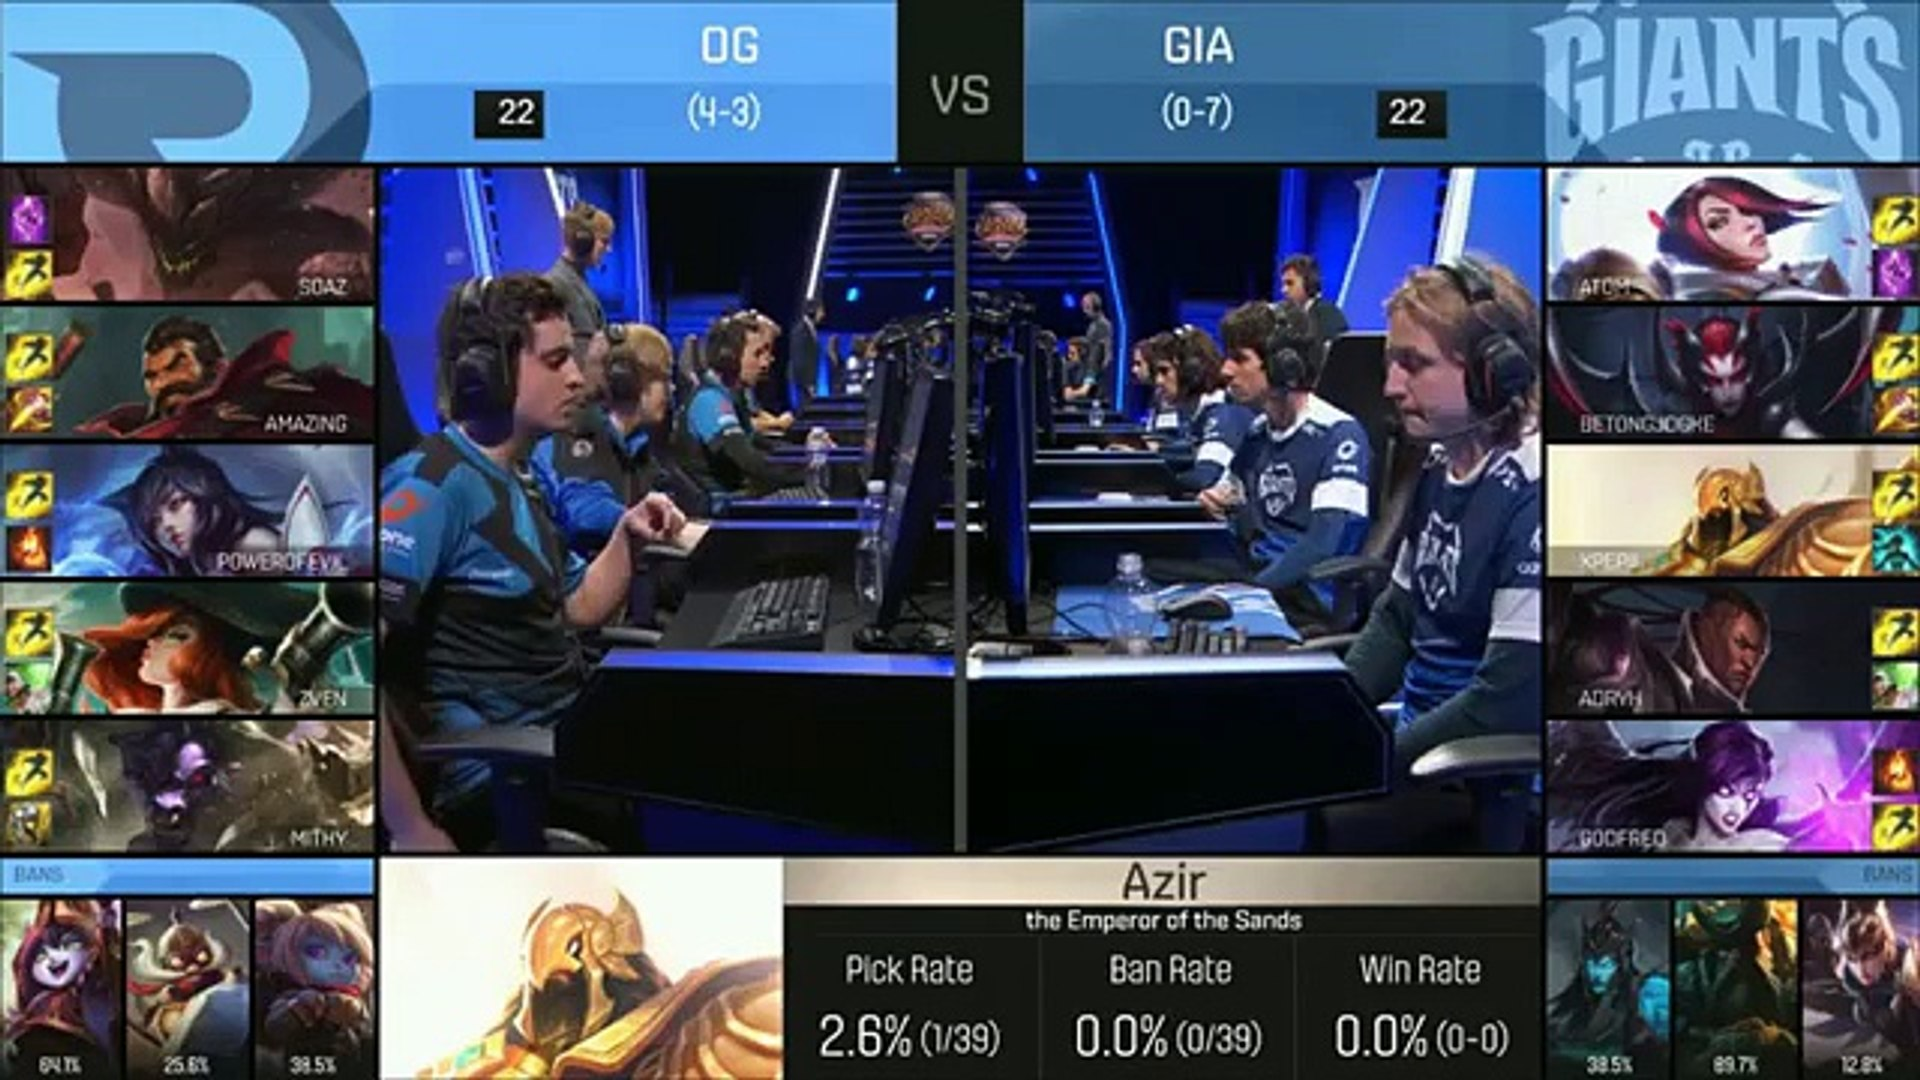 Origen (Powerofevil Ahri) VS Giants (Xpepii Azir) Highlights - 2016 EU LCS Spring W4D2 (FULL HD)